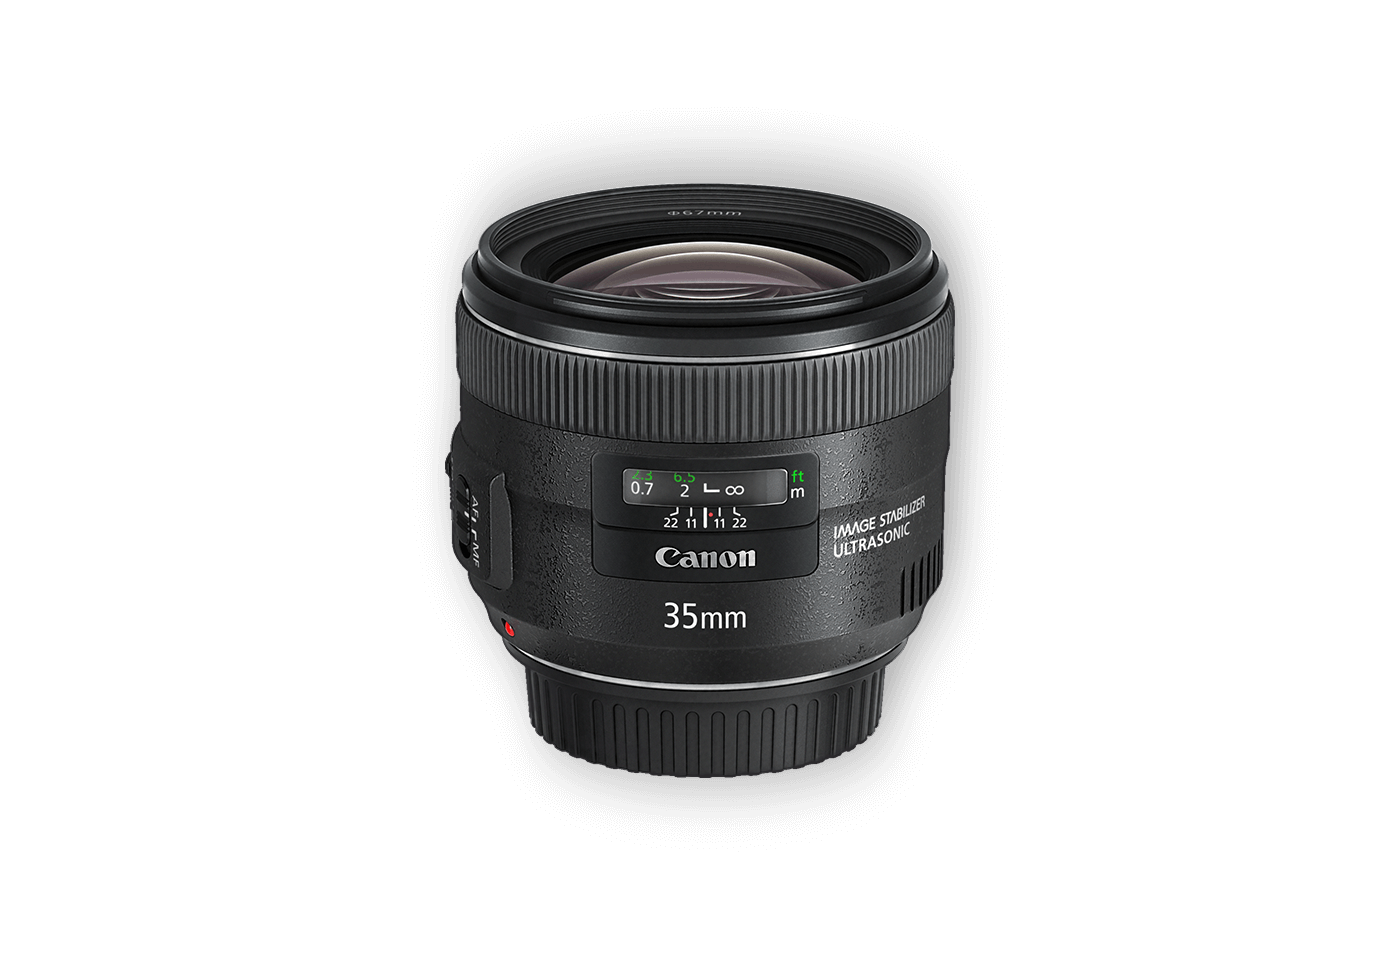 Side view of EF 35mm f/2 IS USM lens